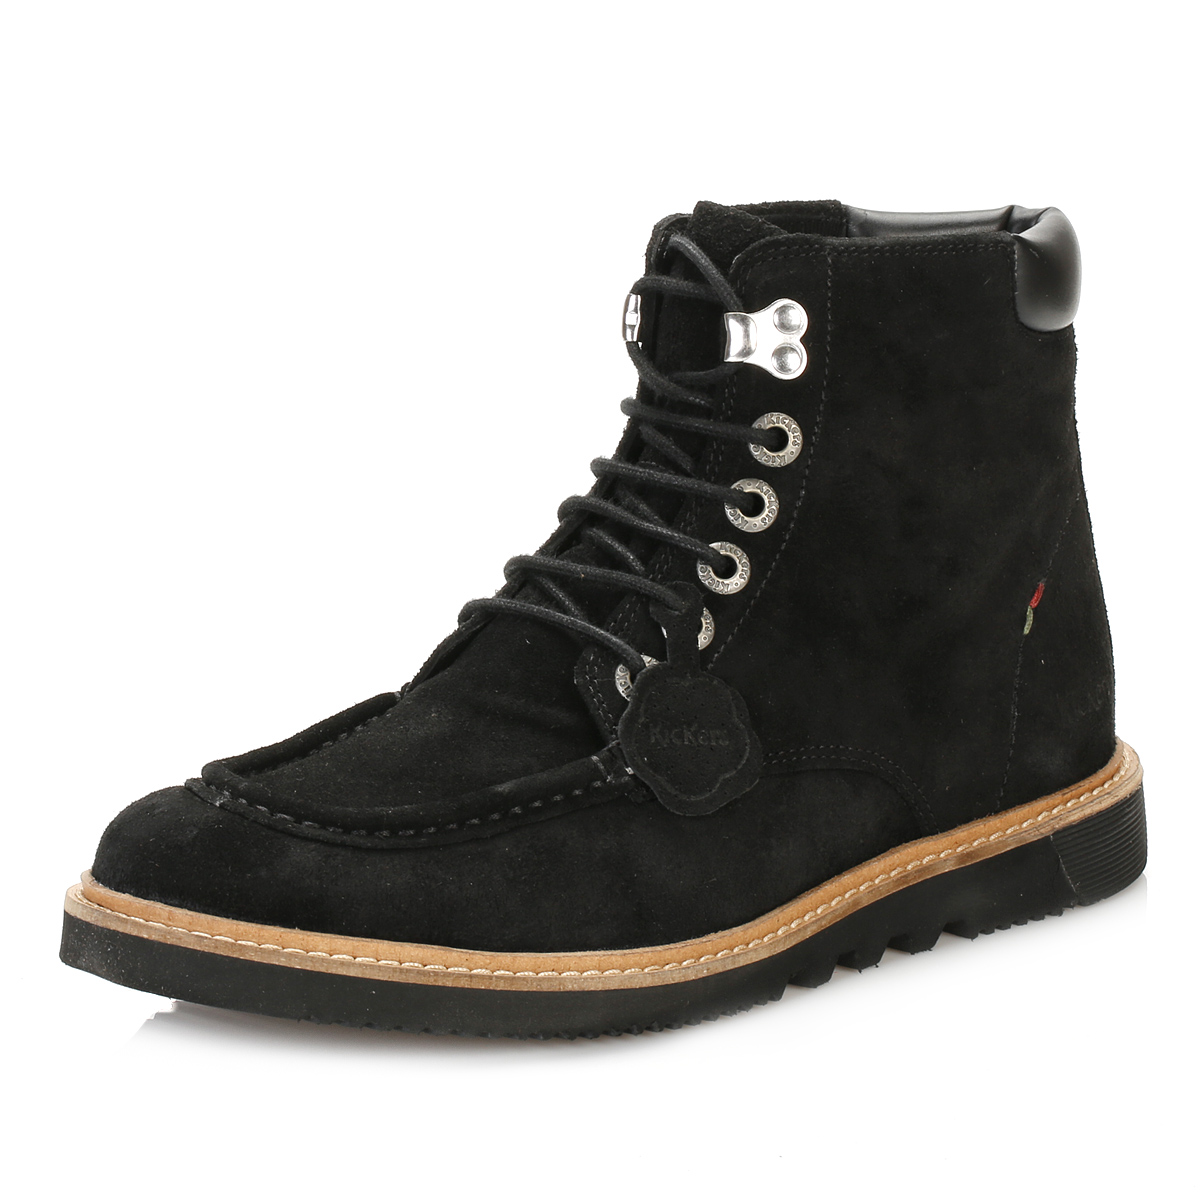 Kickers Shoes For Mens Ebay